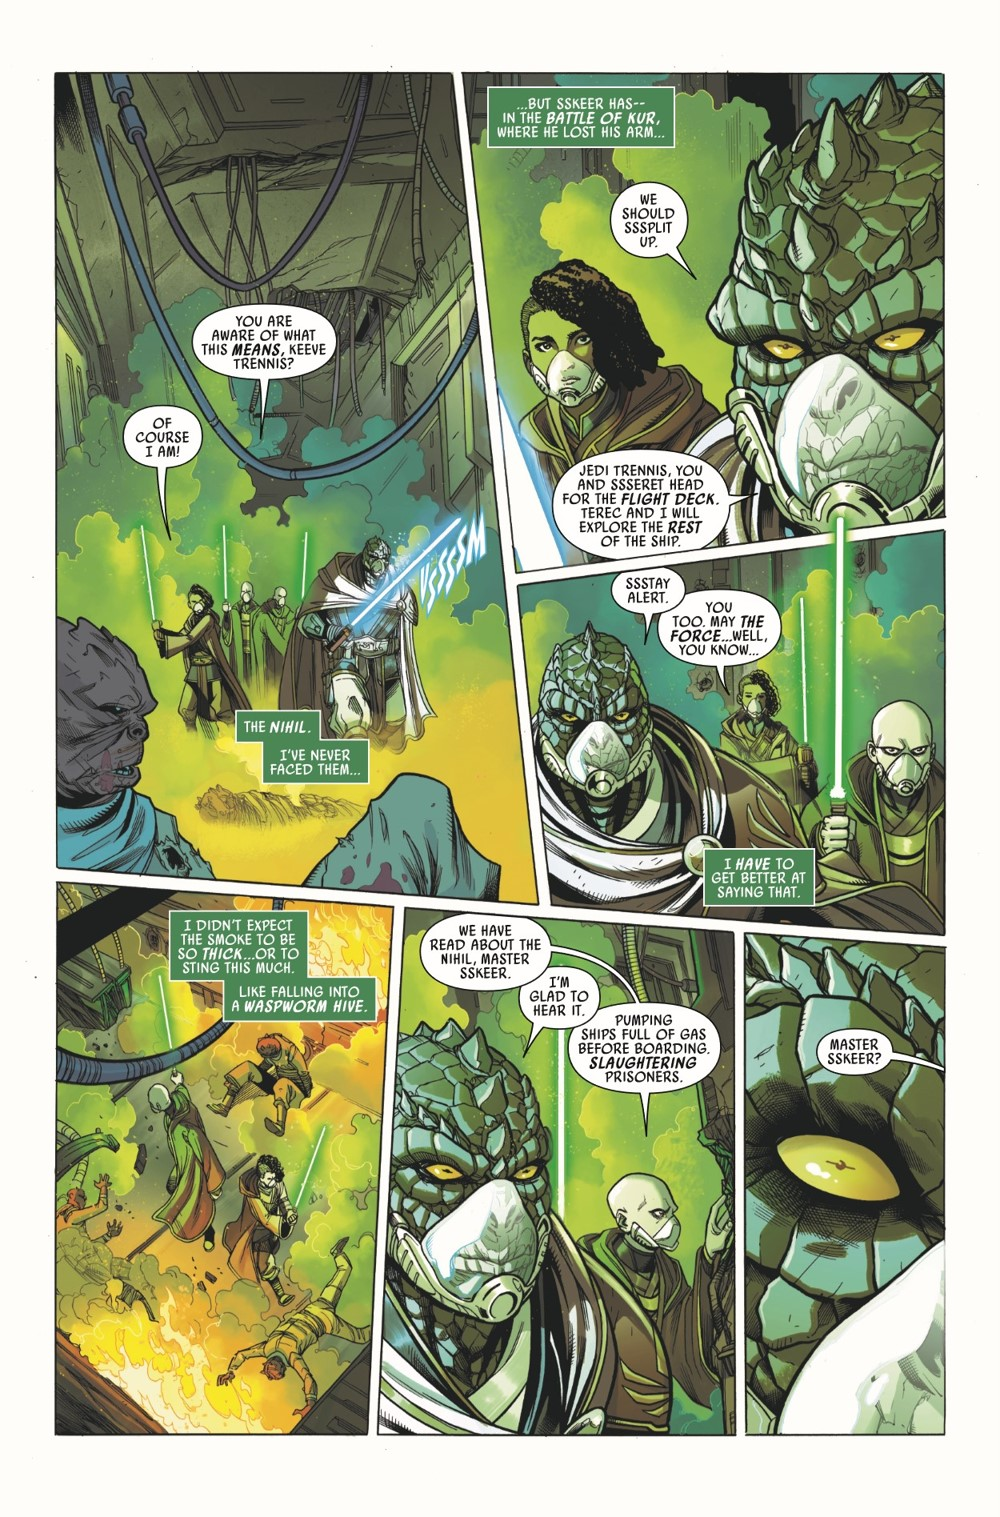 STWHIGHREP2021002_Preview-5 ComicList Previews: STAR WARS THE HIGH REPUBLIC #2